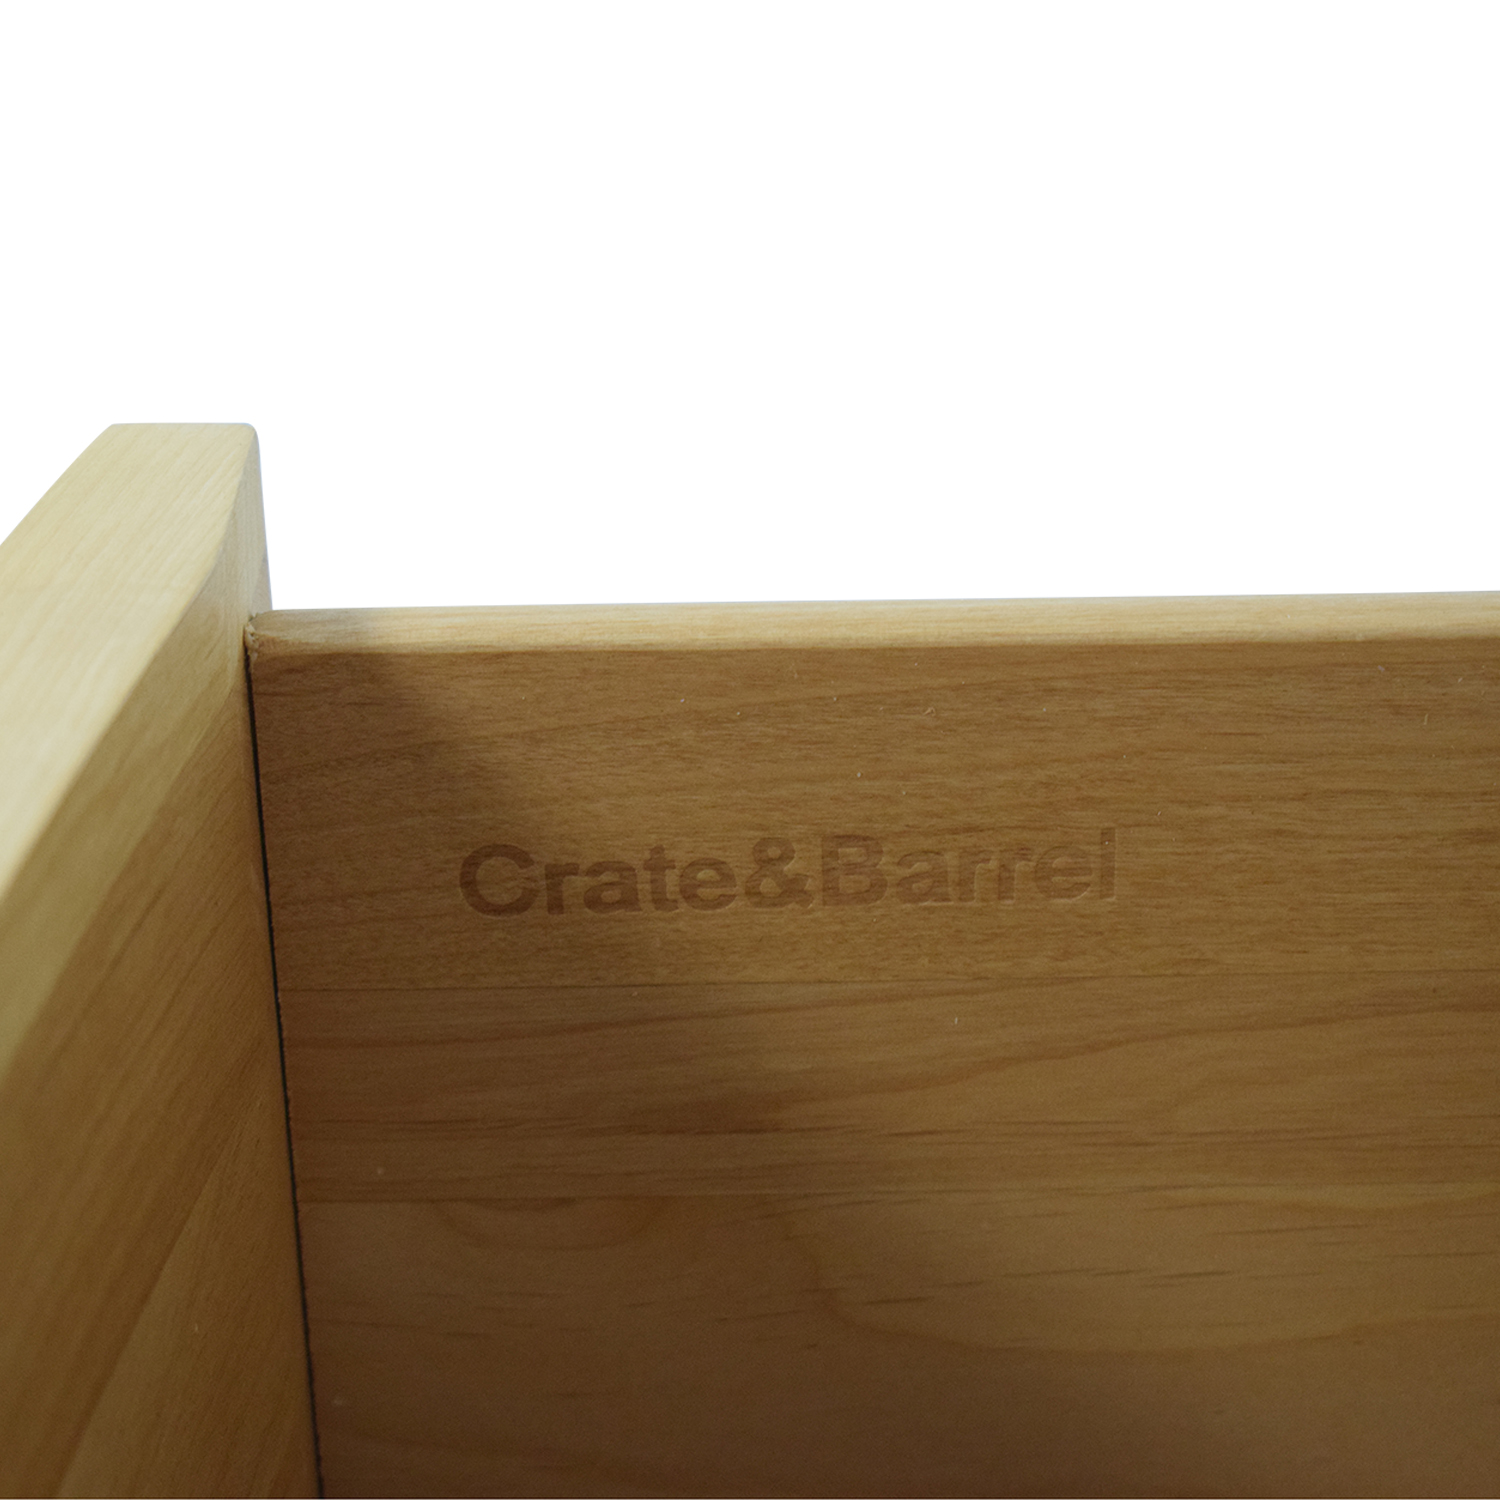 Crate & Barrel Crate & Barrel Chest of Six Drawers discount